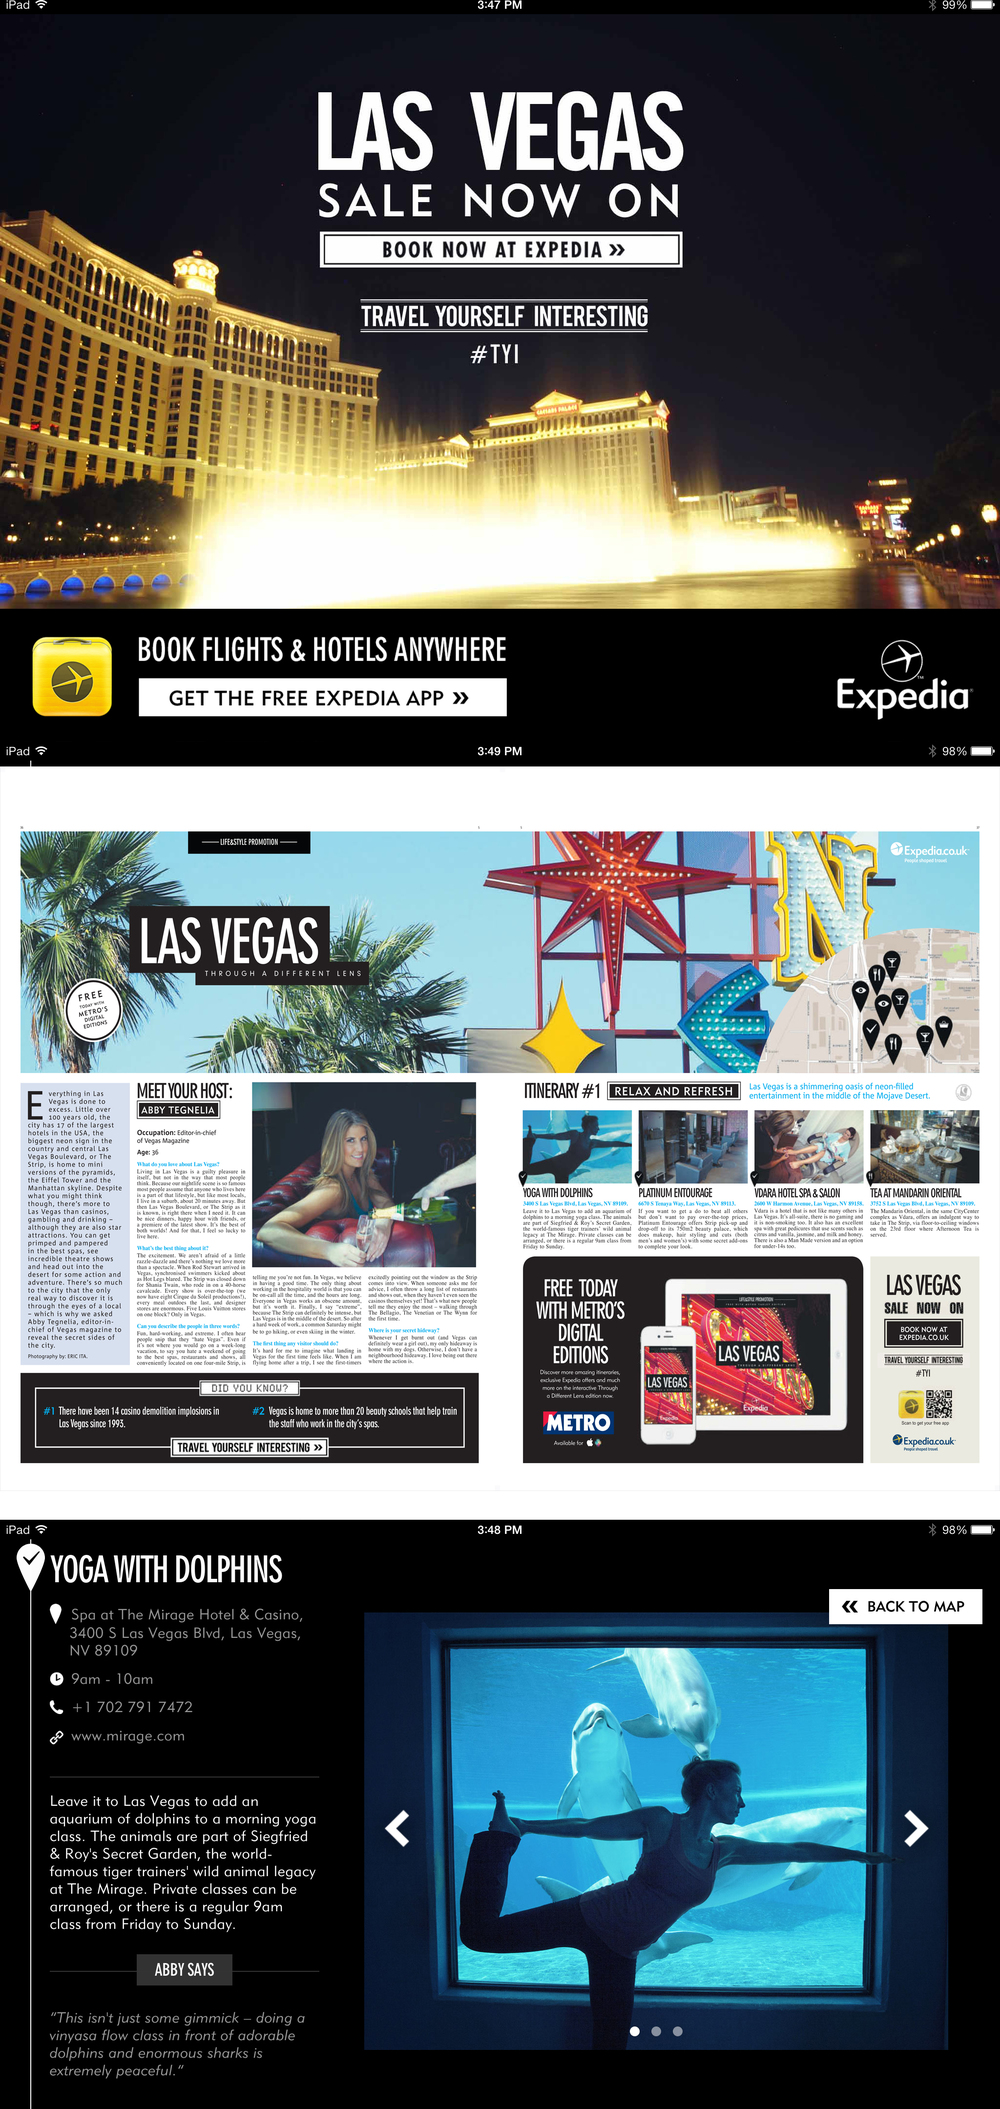 EXPEDIA LAS VEGAS PHOTO GRAPHIC DESIGN LOGO PHOTO STUDIO